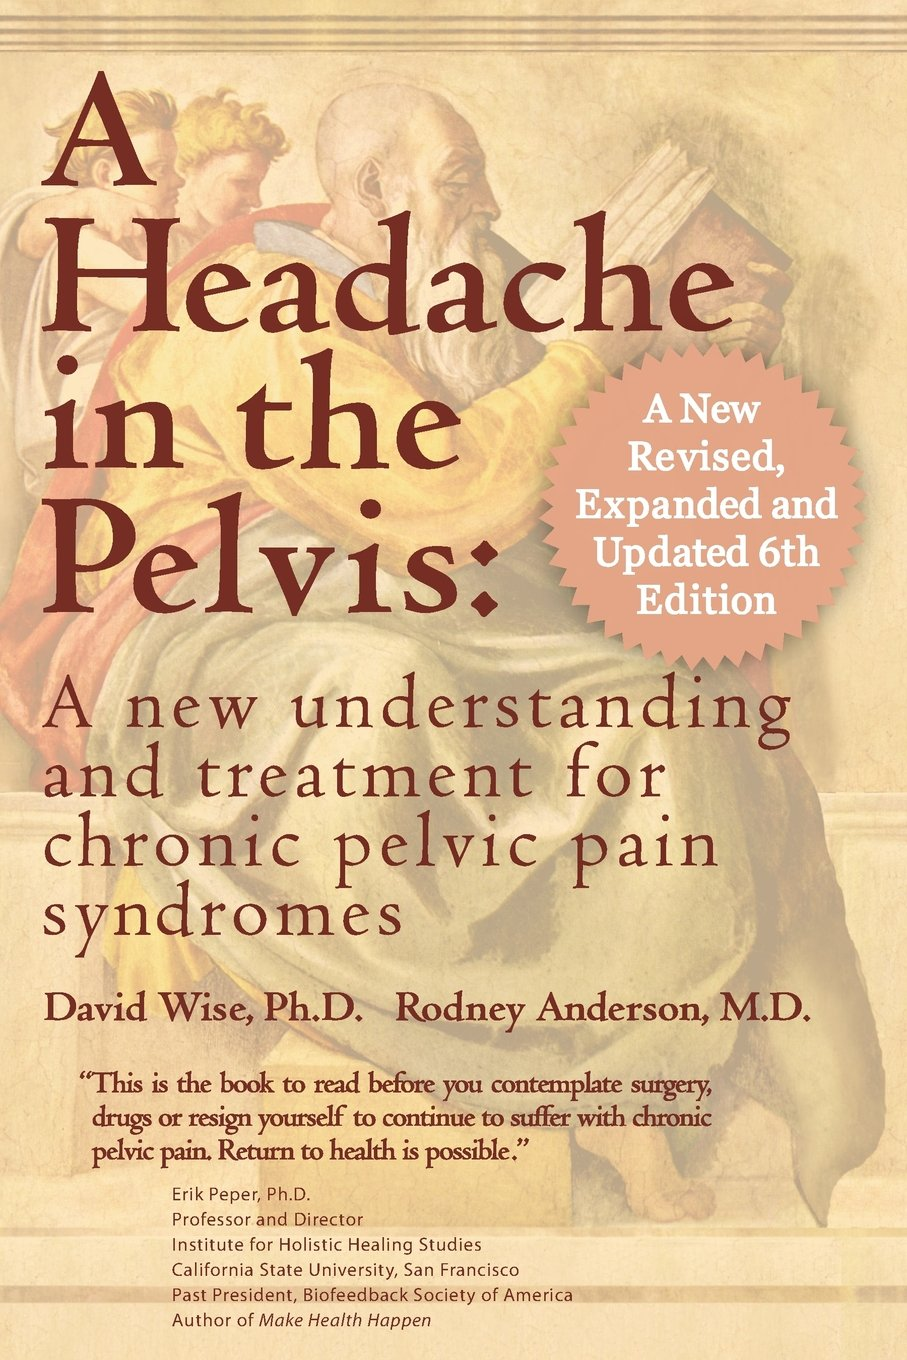 A Headache in the Pelvis, a New Expanded 6th Edition: A New Understanding and Treatment for Chronic Pelvic Pain Syndromes by National Center For Pelvic Pain